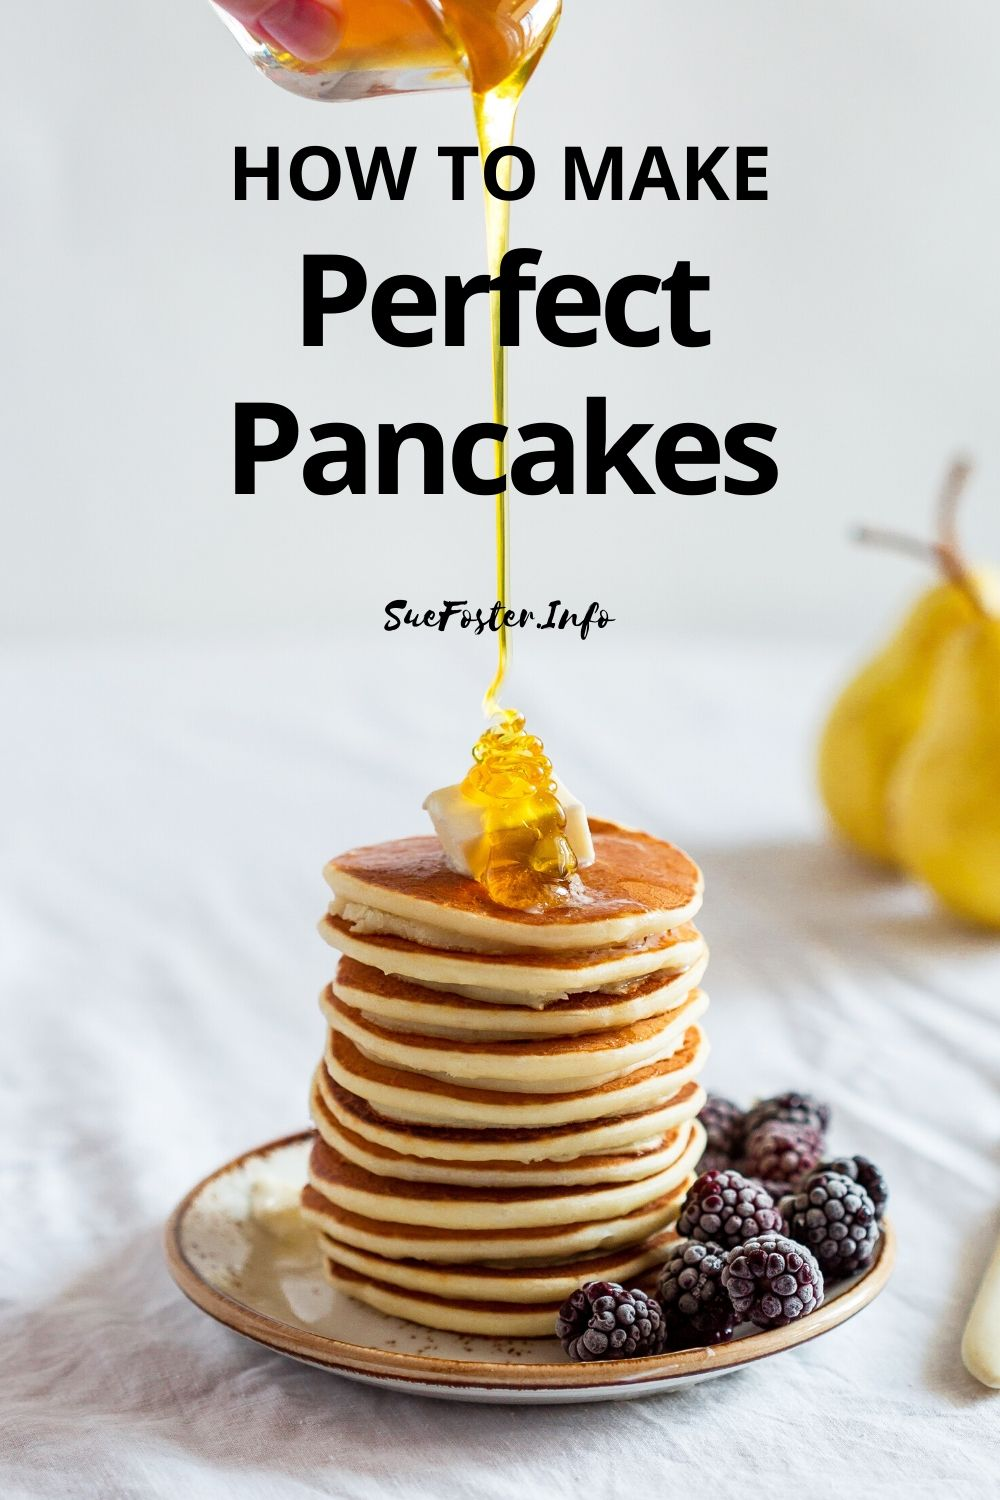 How to make perfect pancakes.